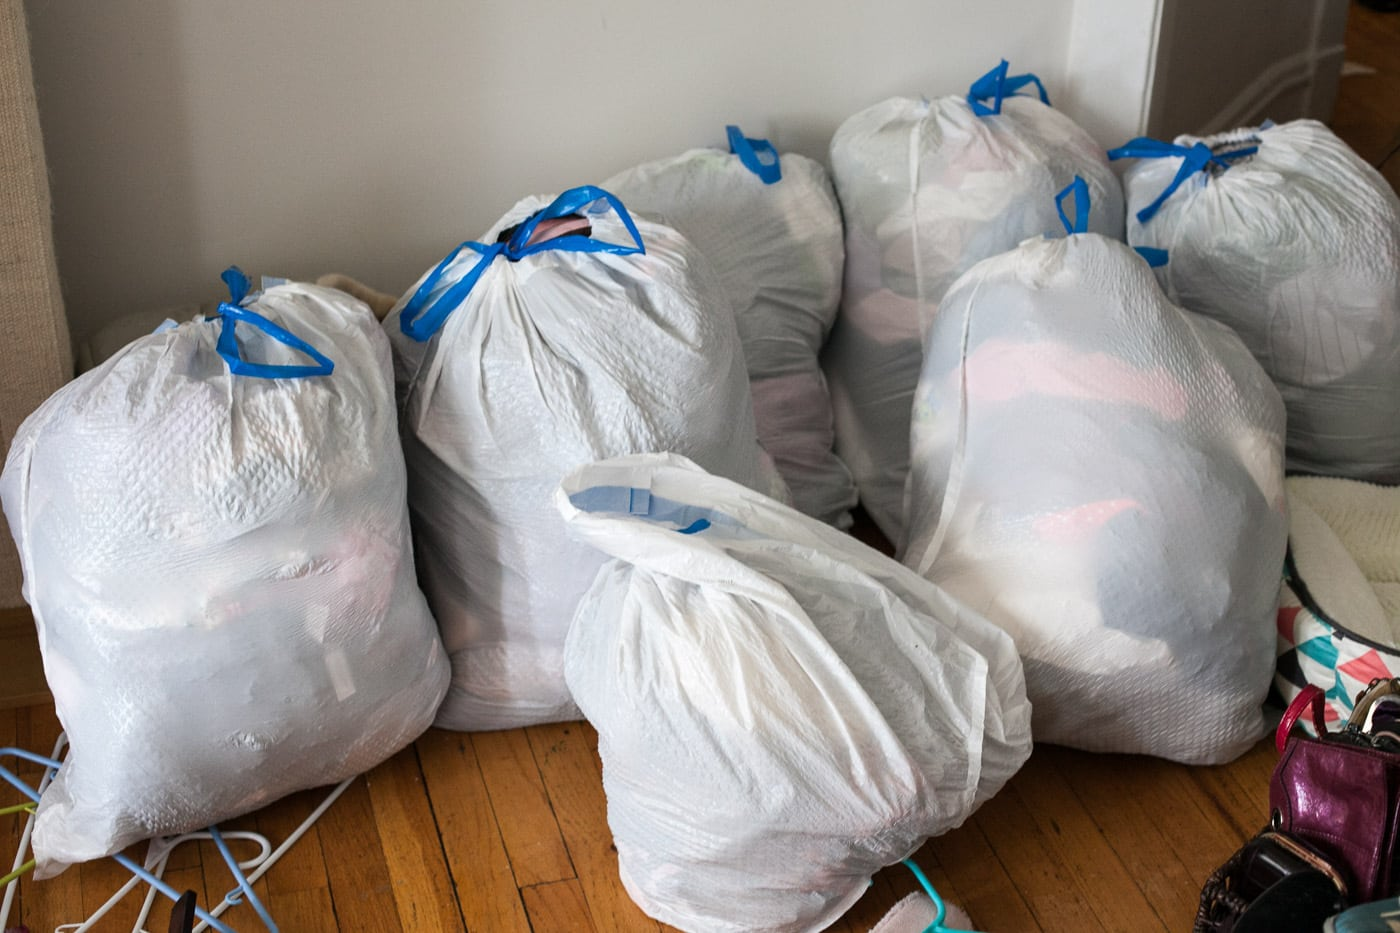 Bags and bags of clothes to get rid of after sorting through my clothes using the KonMari method.